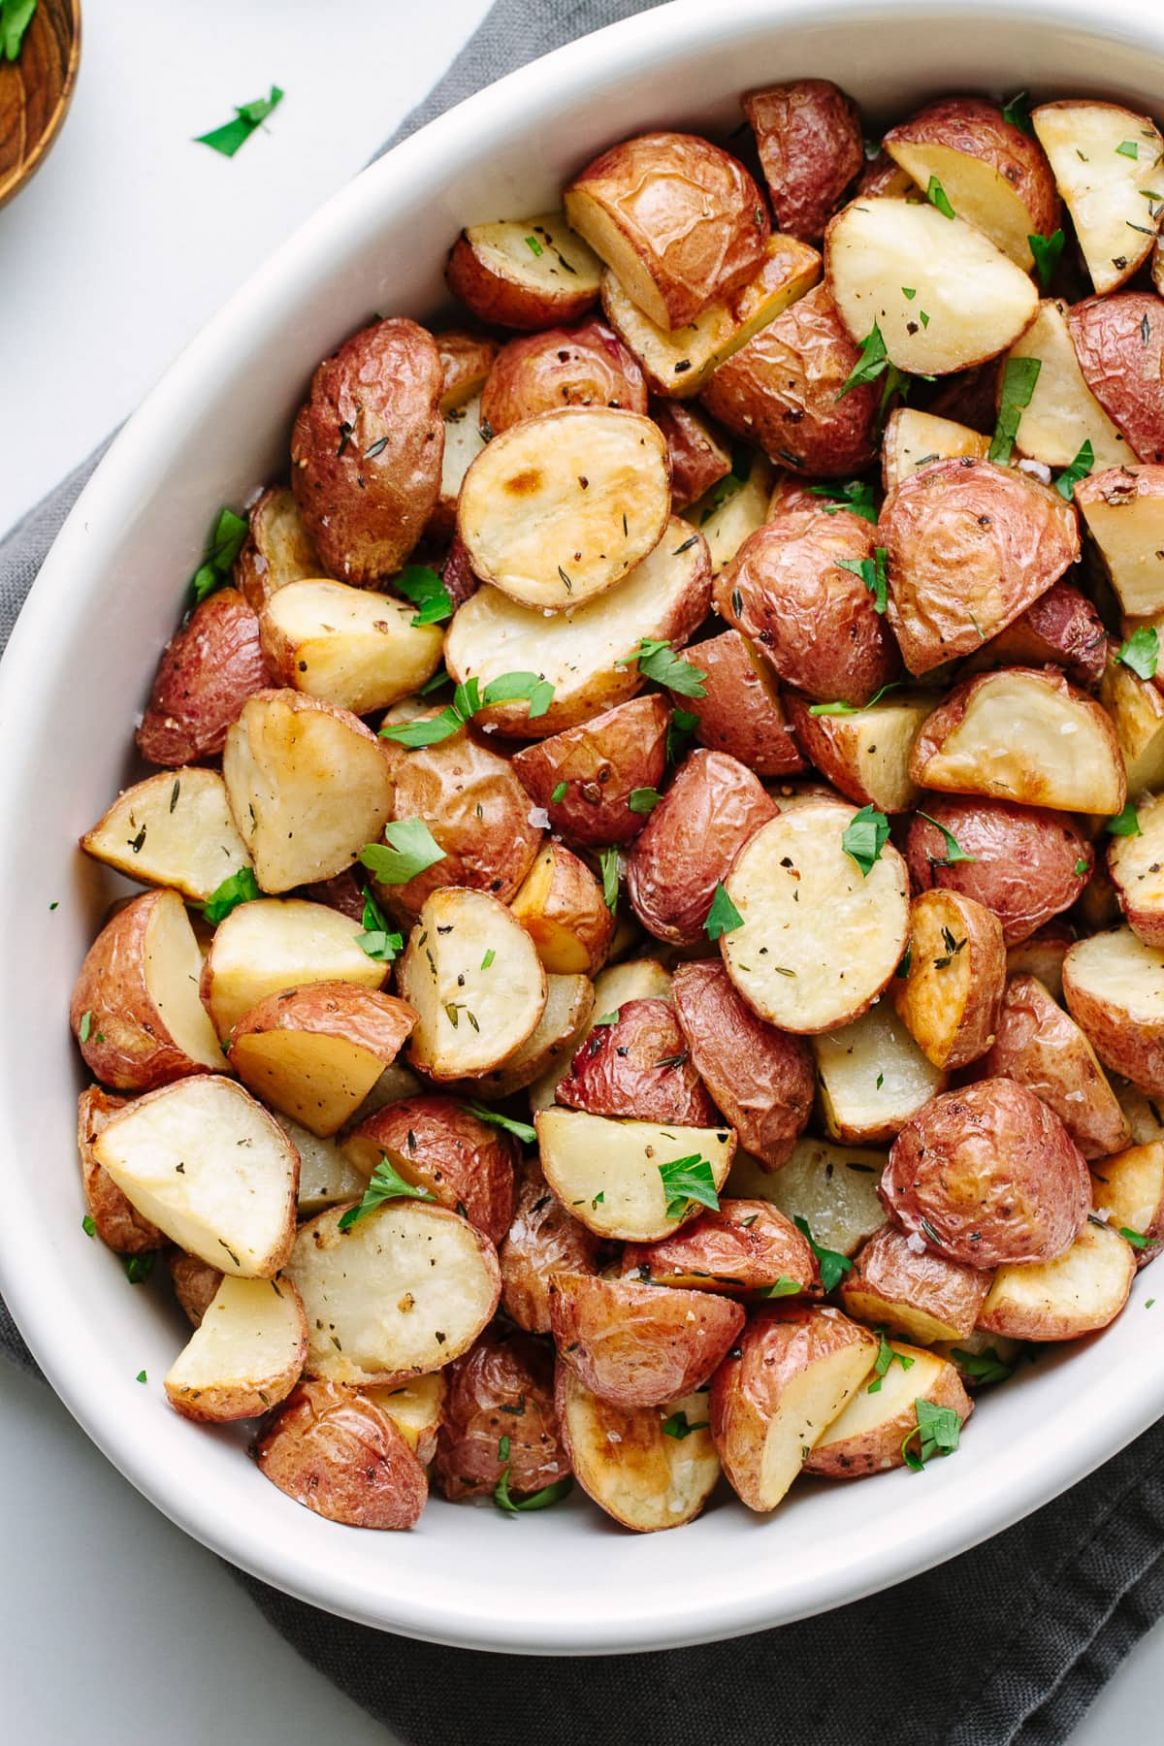 EASY OVEN-ROASTED RED POTATOES